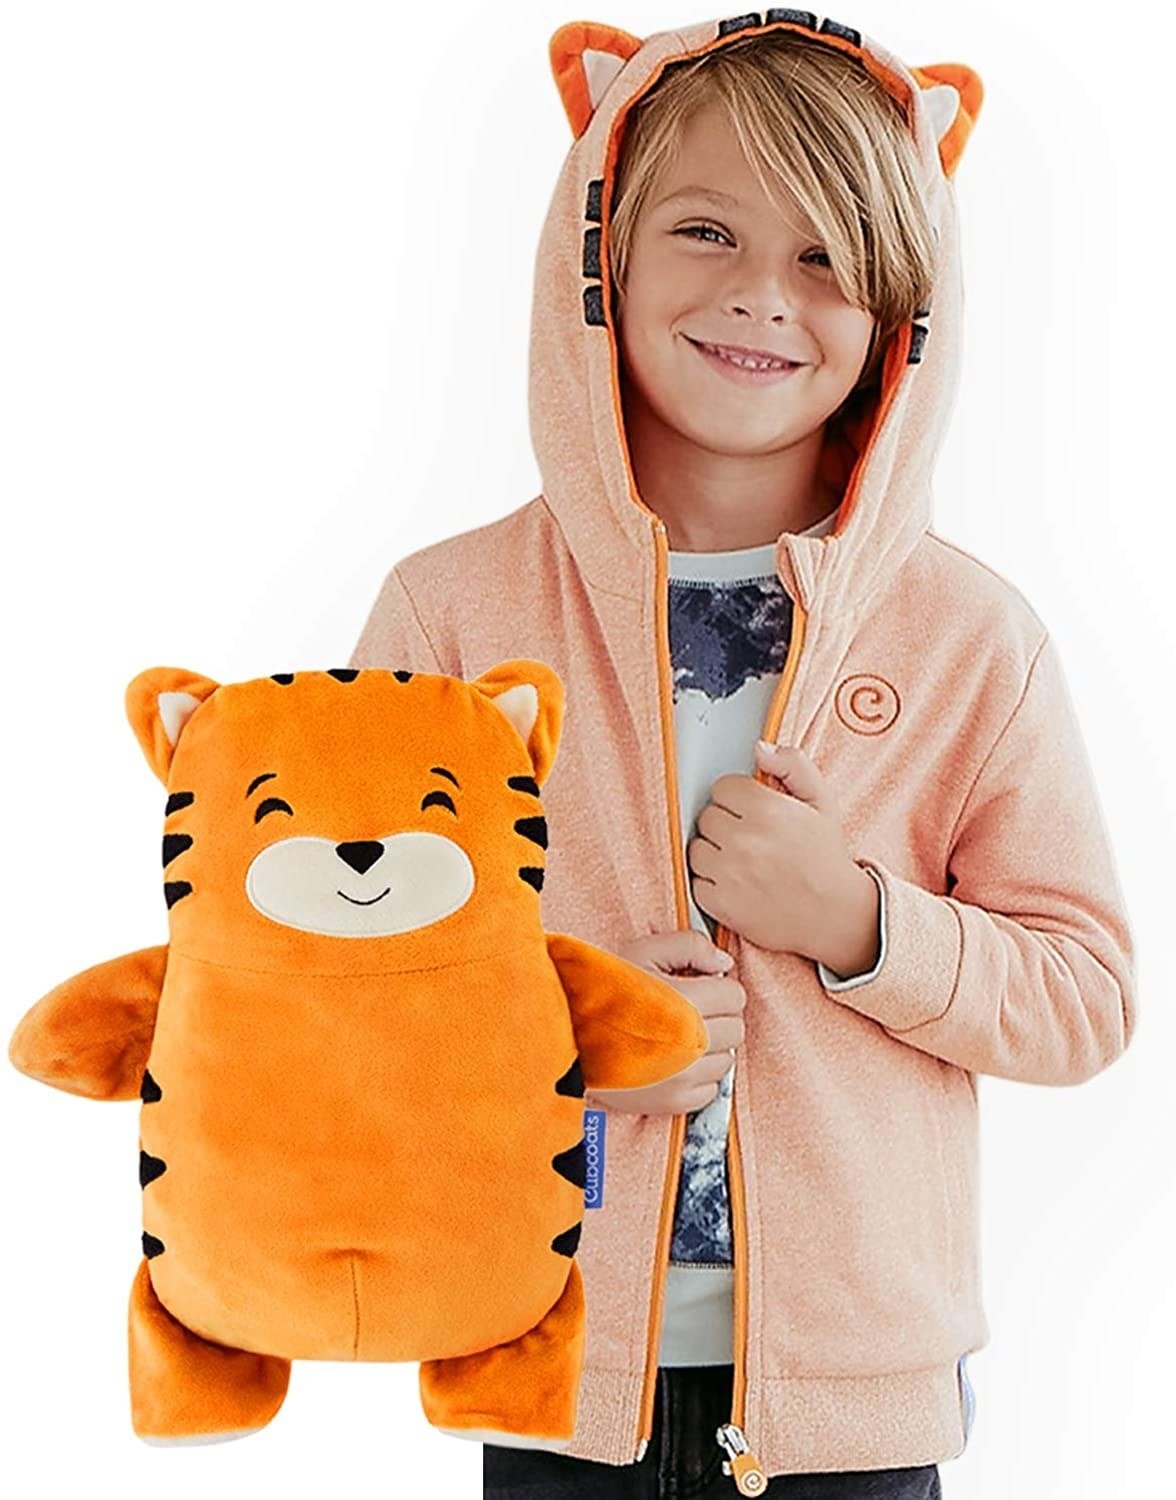 A kid model in an orange pullover with ears on the hood and the tiger plush the sweatshirt turns into